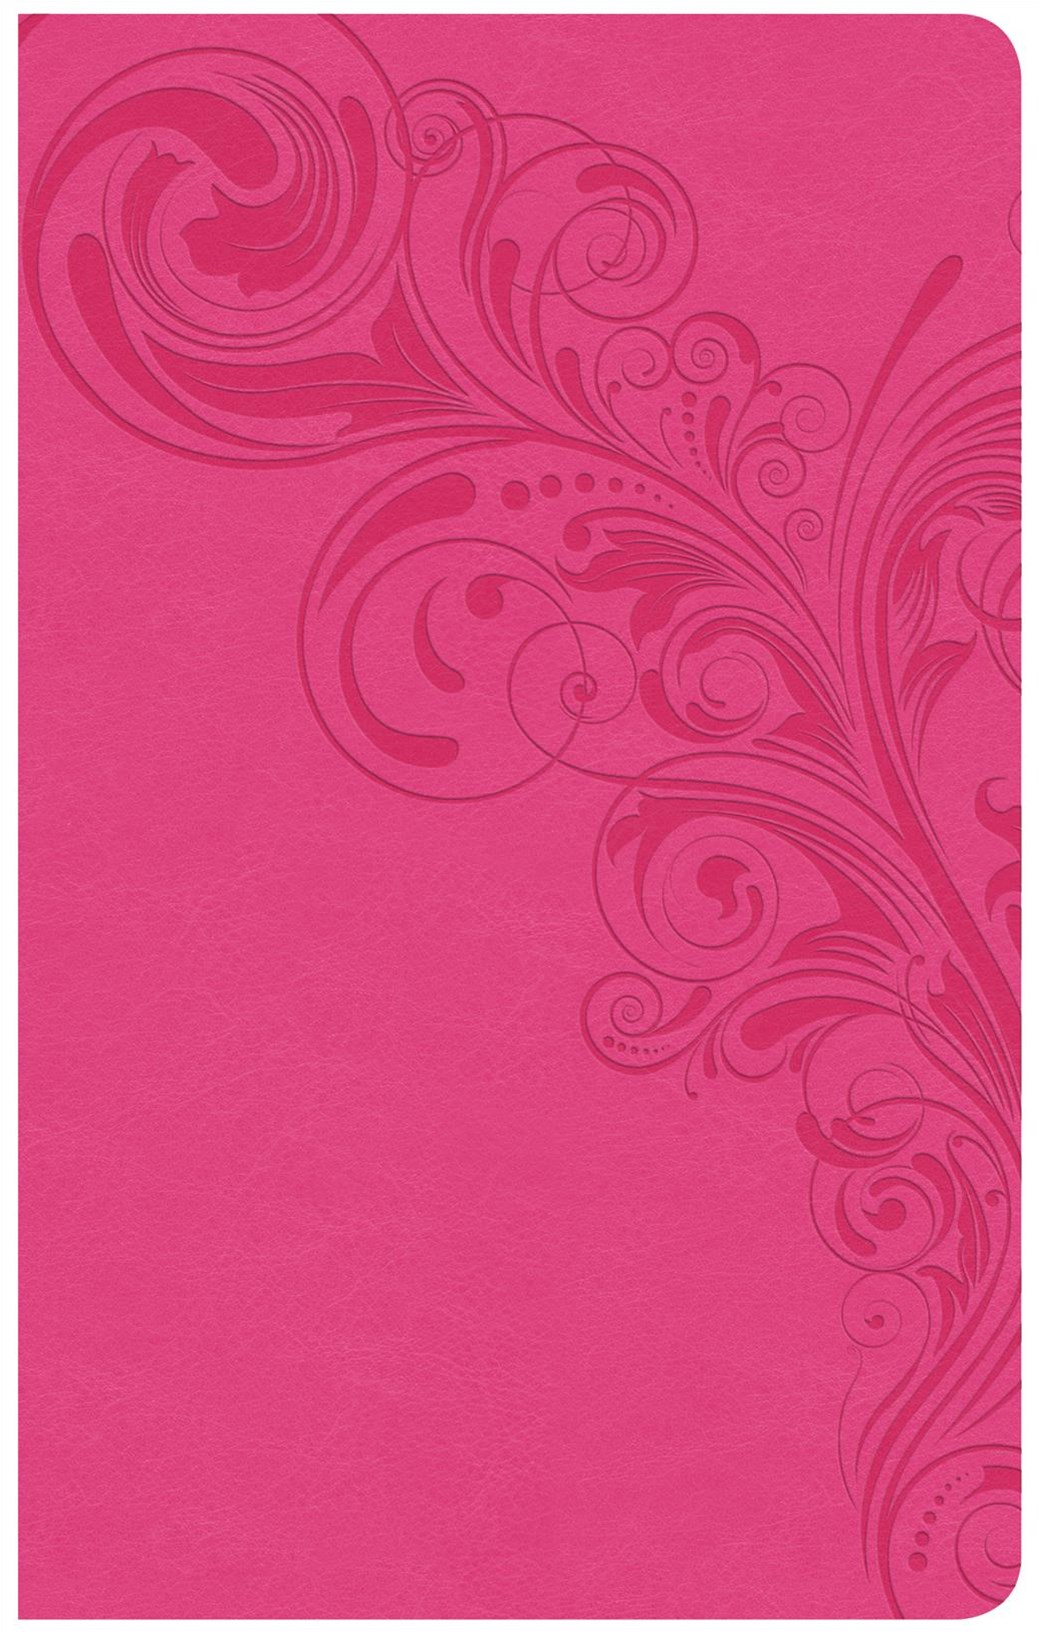 CSB Ultrathin Reference Bible, Pink LeatherTouch, Indexed